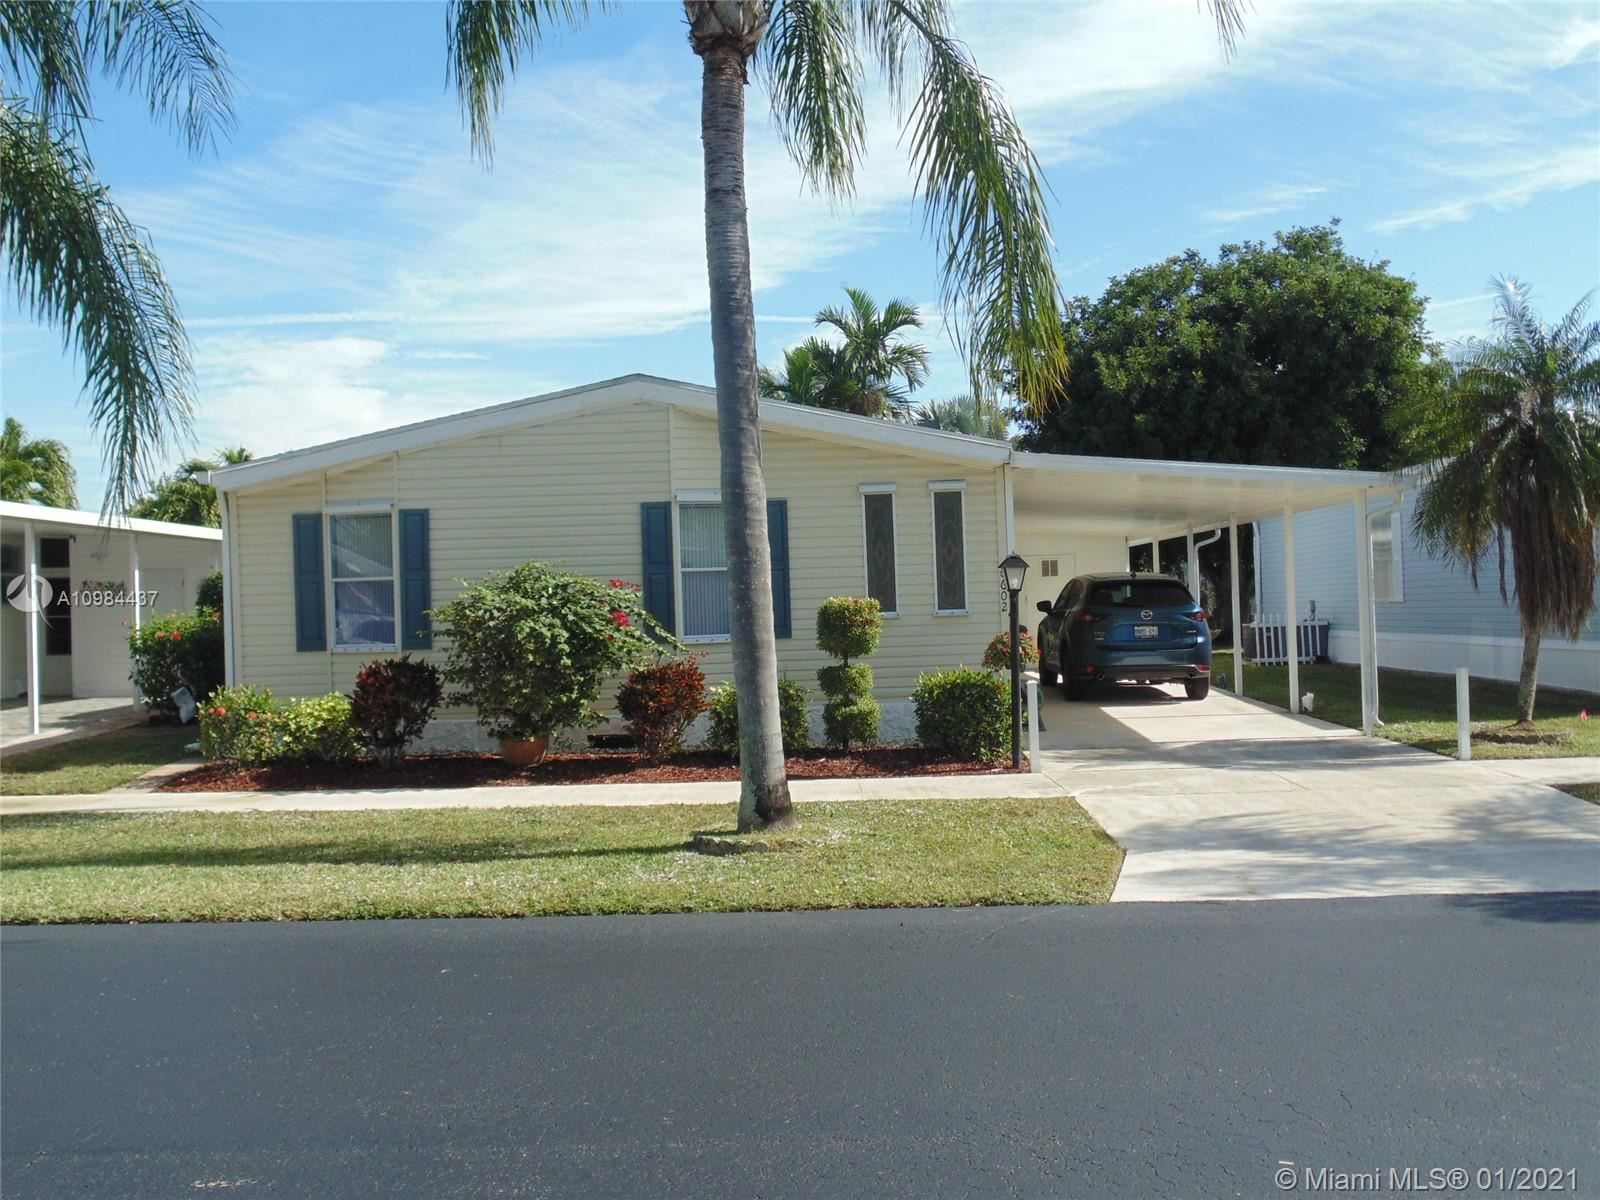 6602 NW 37th Ave, Coconut Creek, FL 33073 - #: A10984437